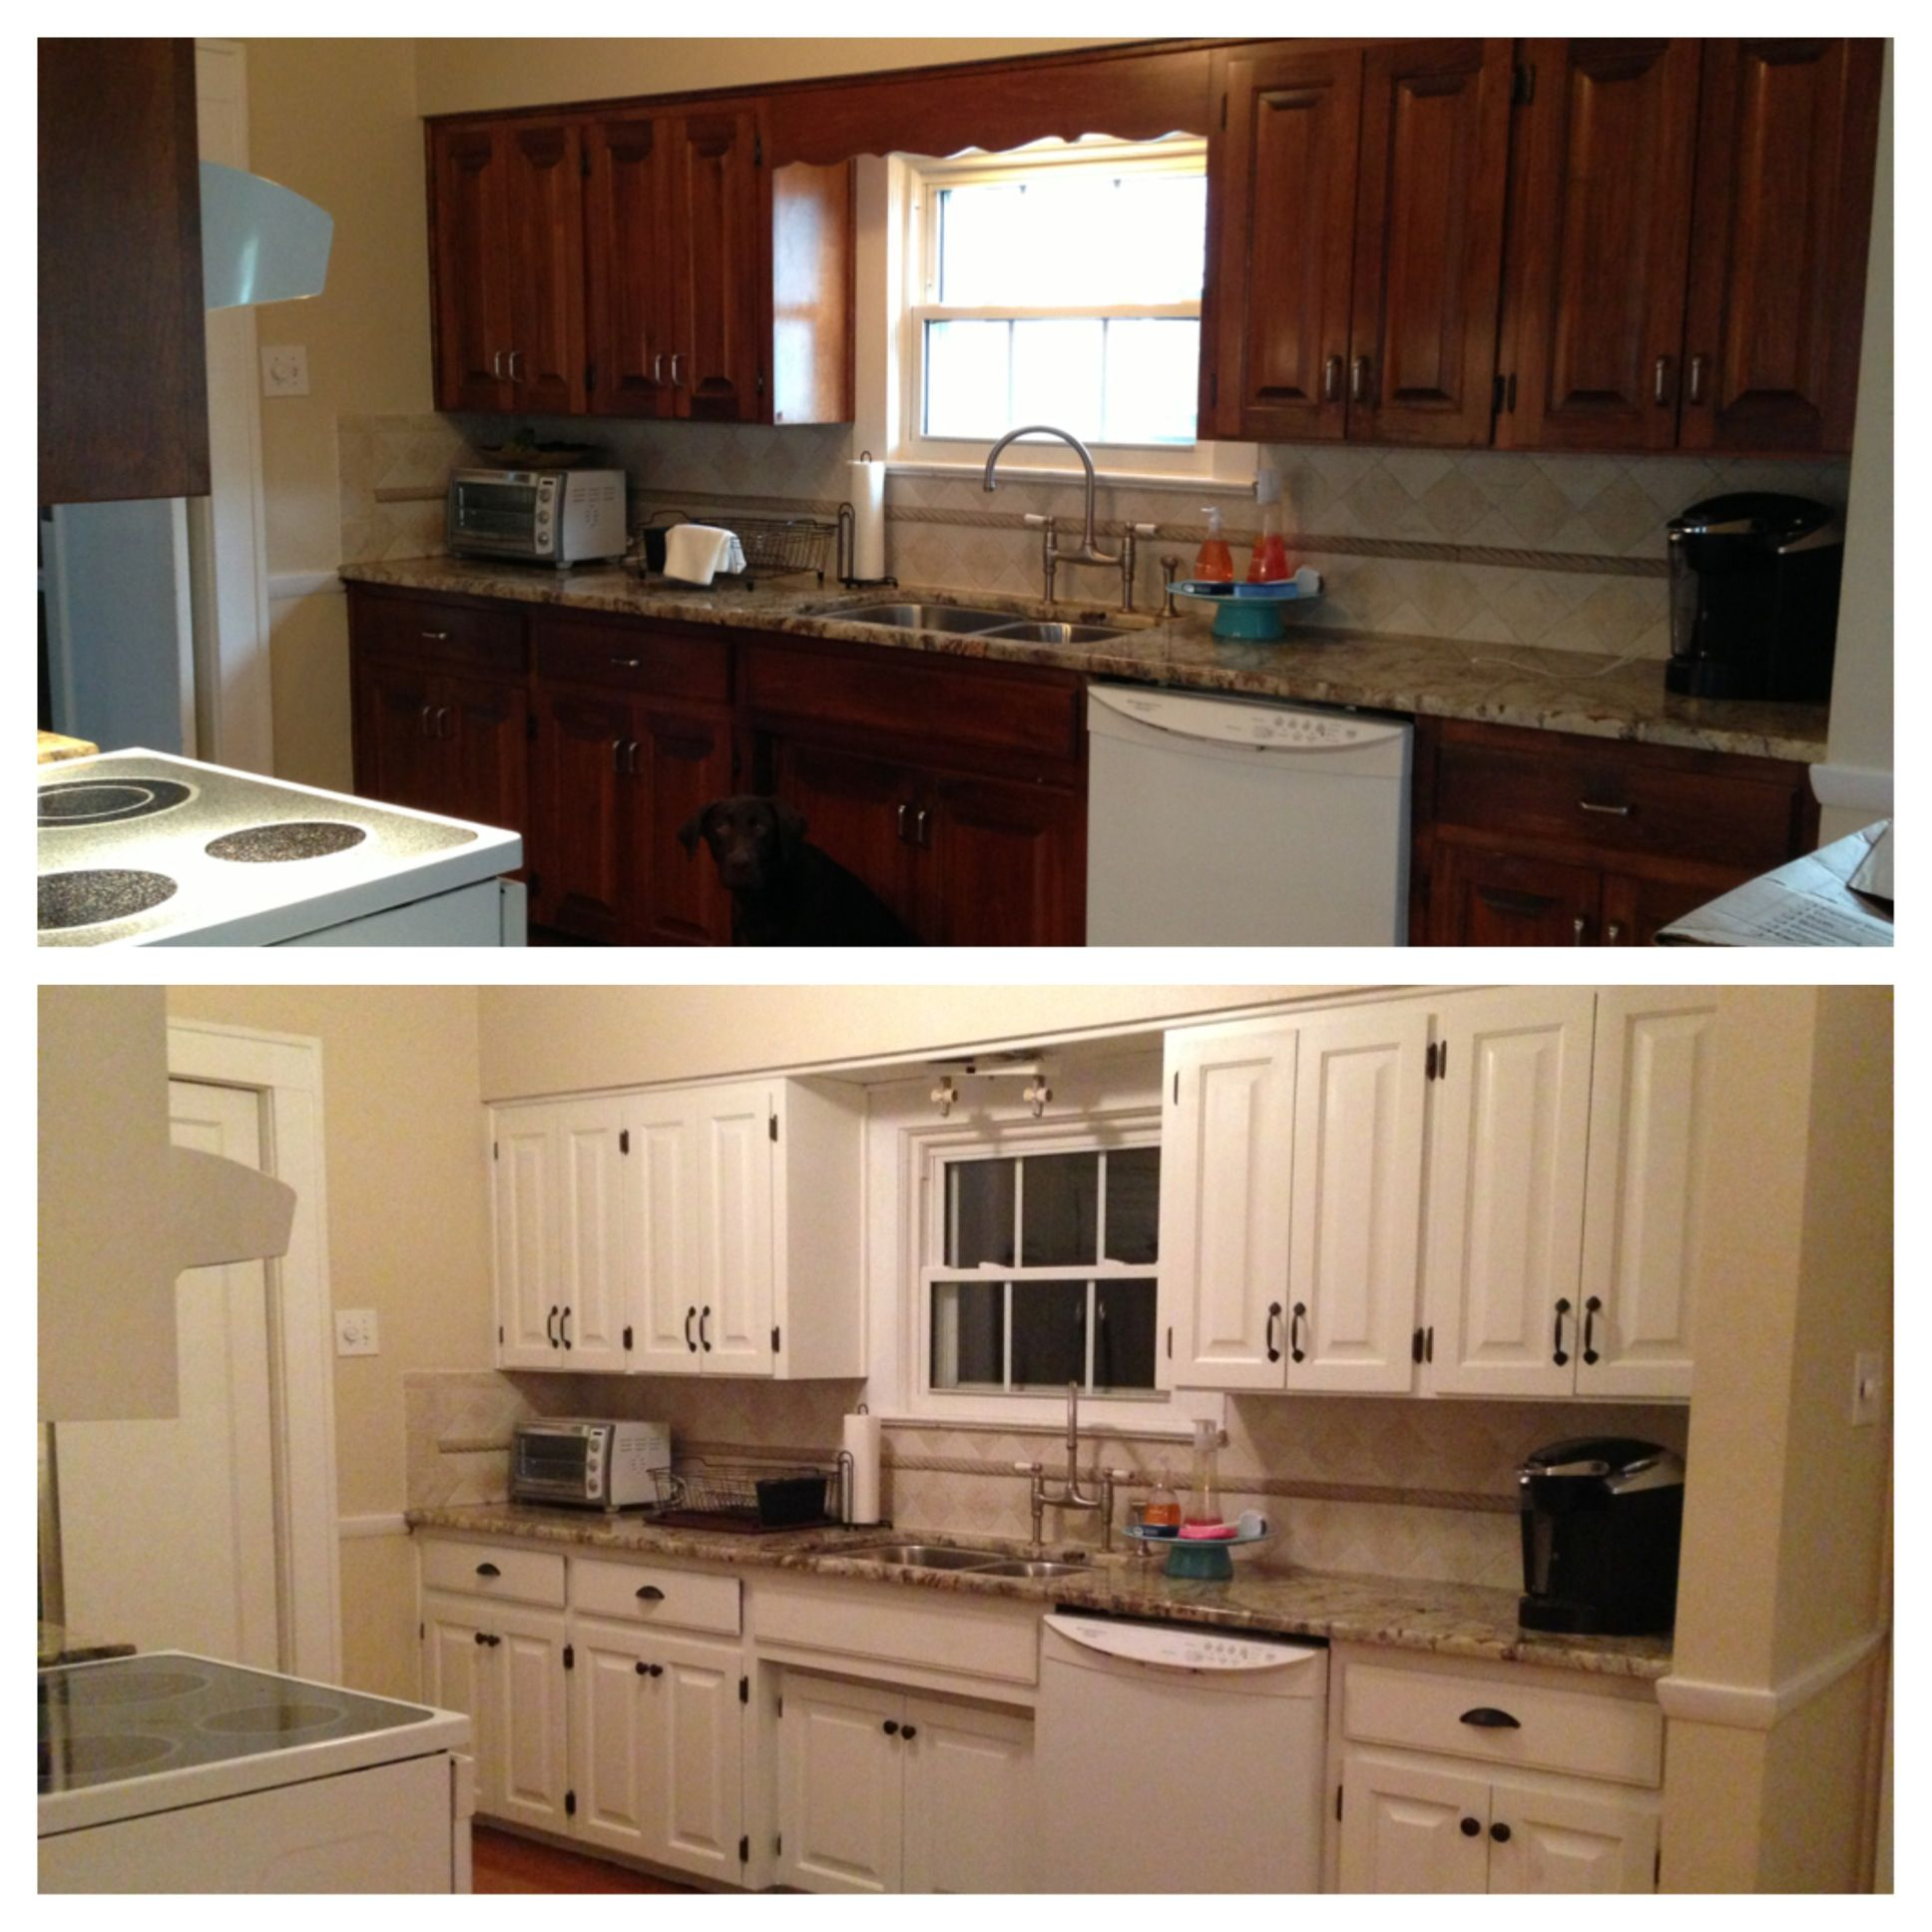 Wooden kitchen cabinets redone white Wow what a difference this